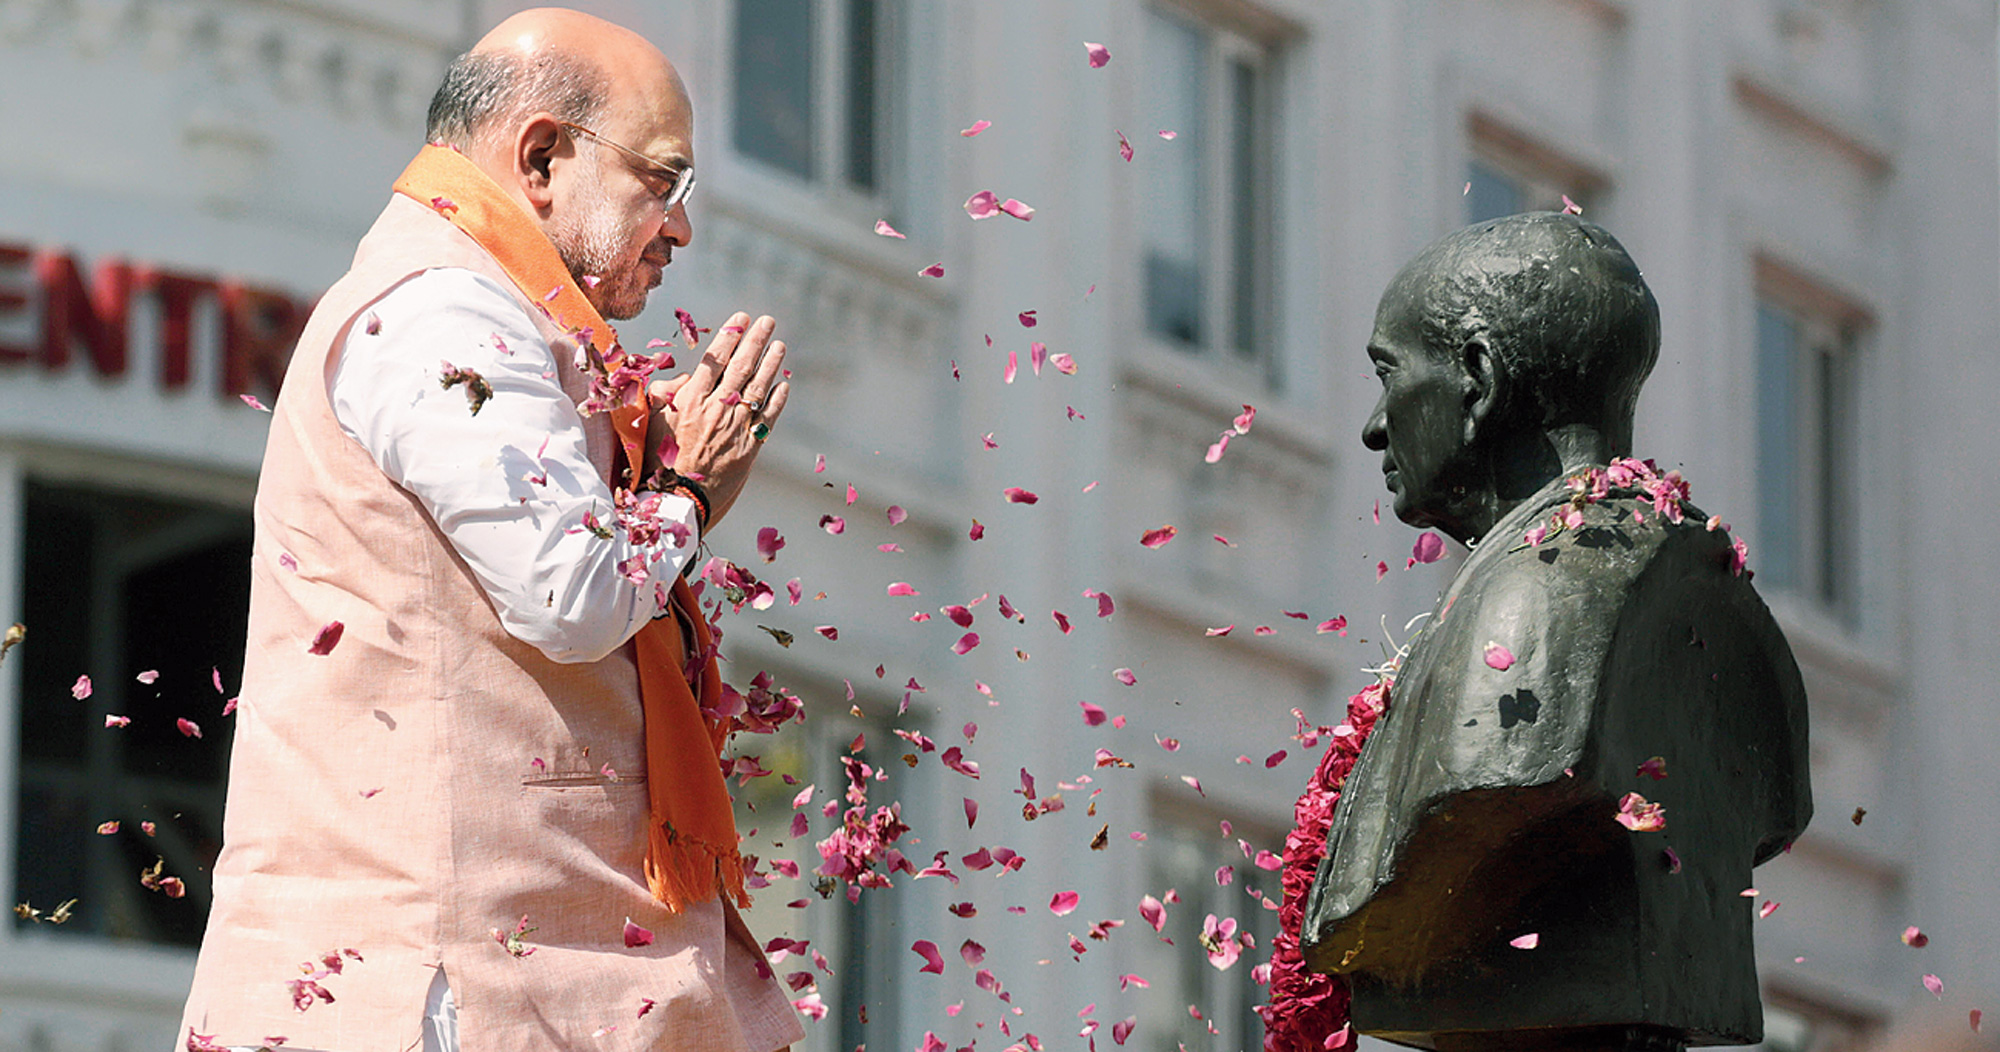 BJP president Amit Shah, considered the second most powerful person in the country after Prime Minister Narendra Modi, pays tribute to Sardar Vallabhbhai Patel, before filing his nomination papers in Ahmedabad on Saturday.